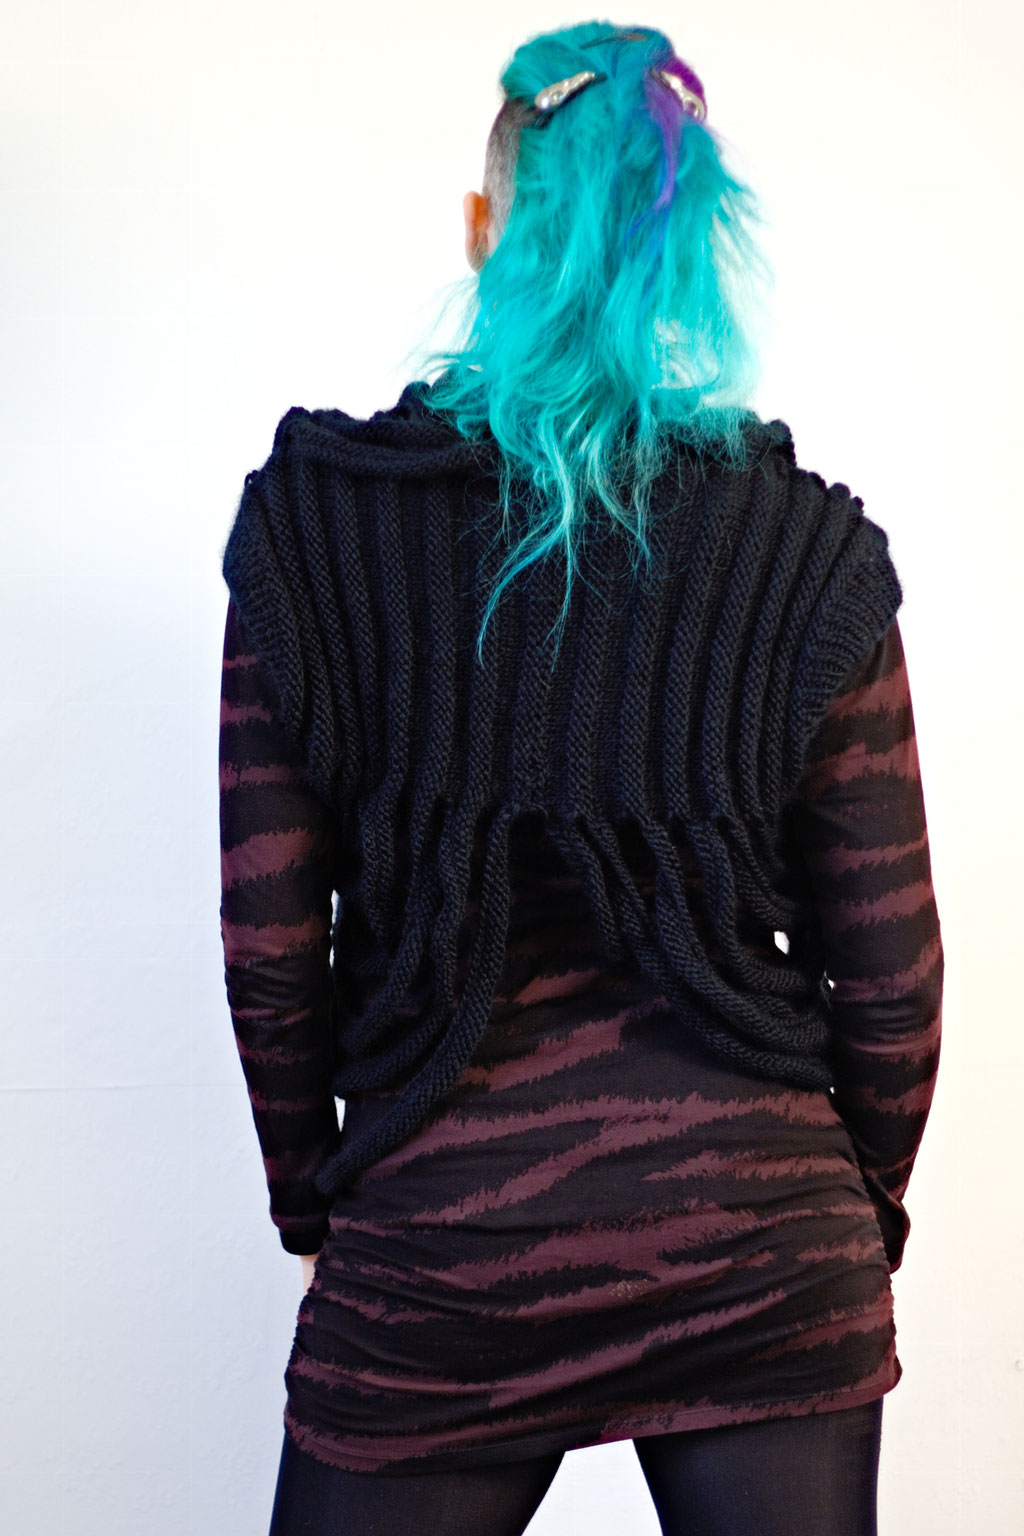 Zombie knitted vest & Crochet crop top of dreams - dystopian knit - Zebraspider Eco Anti-Fashion Blog